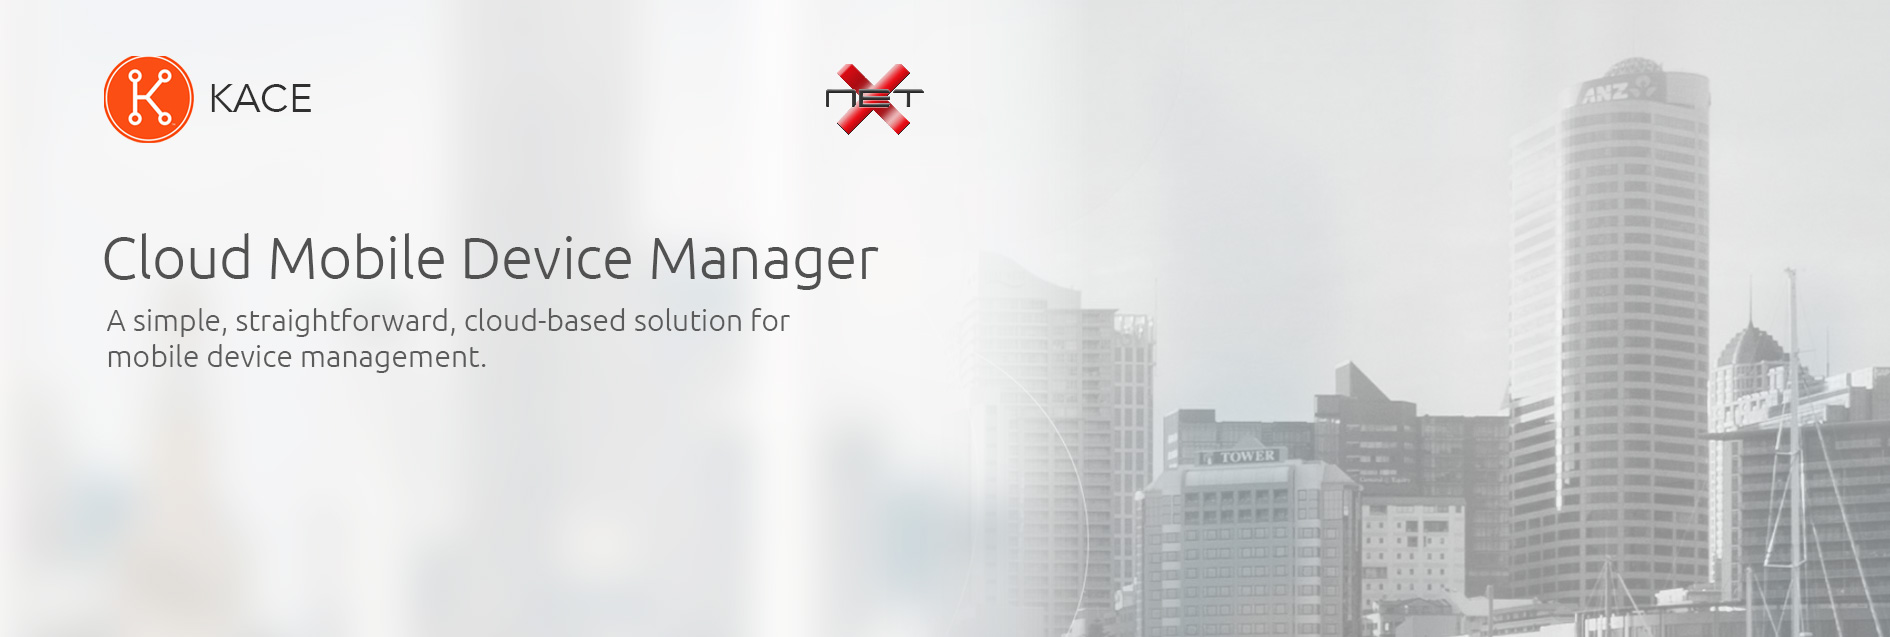 netx kace mobile device manager